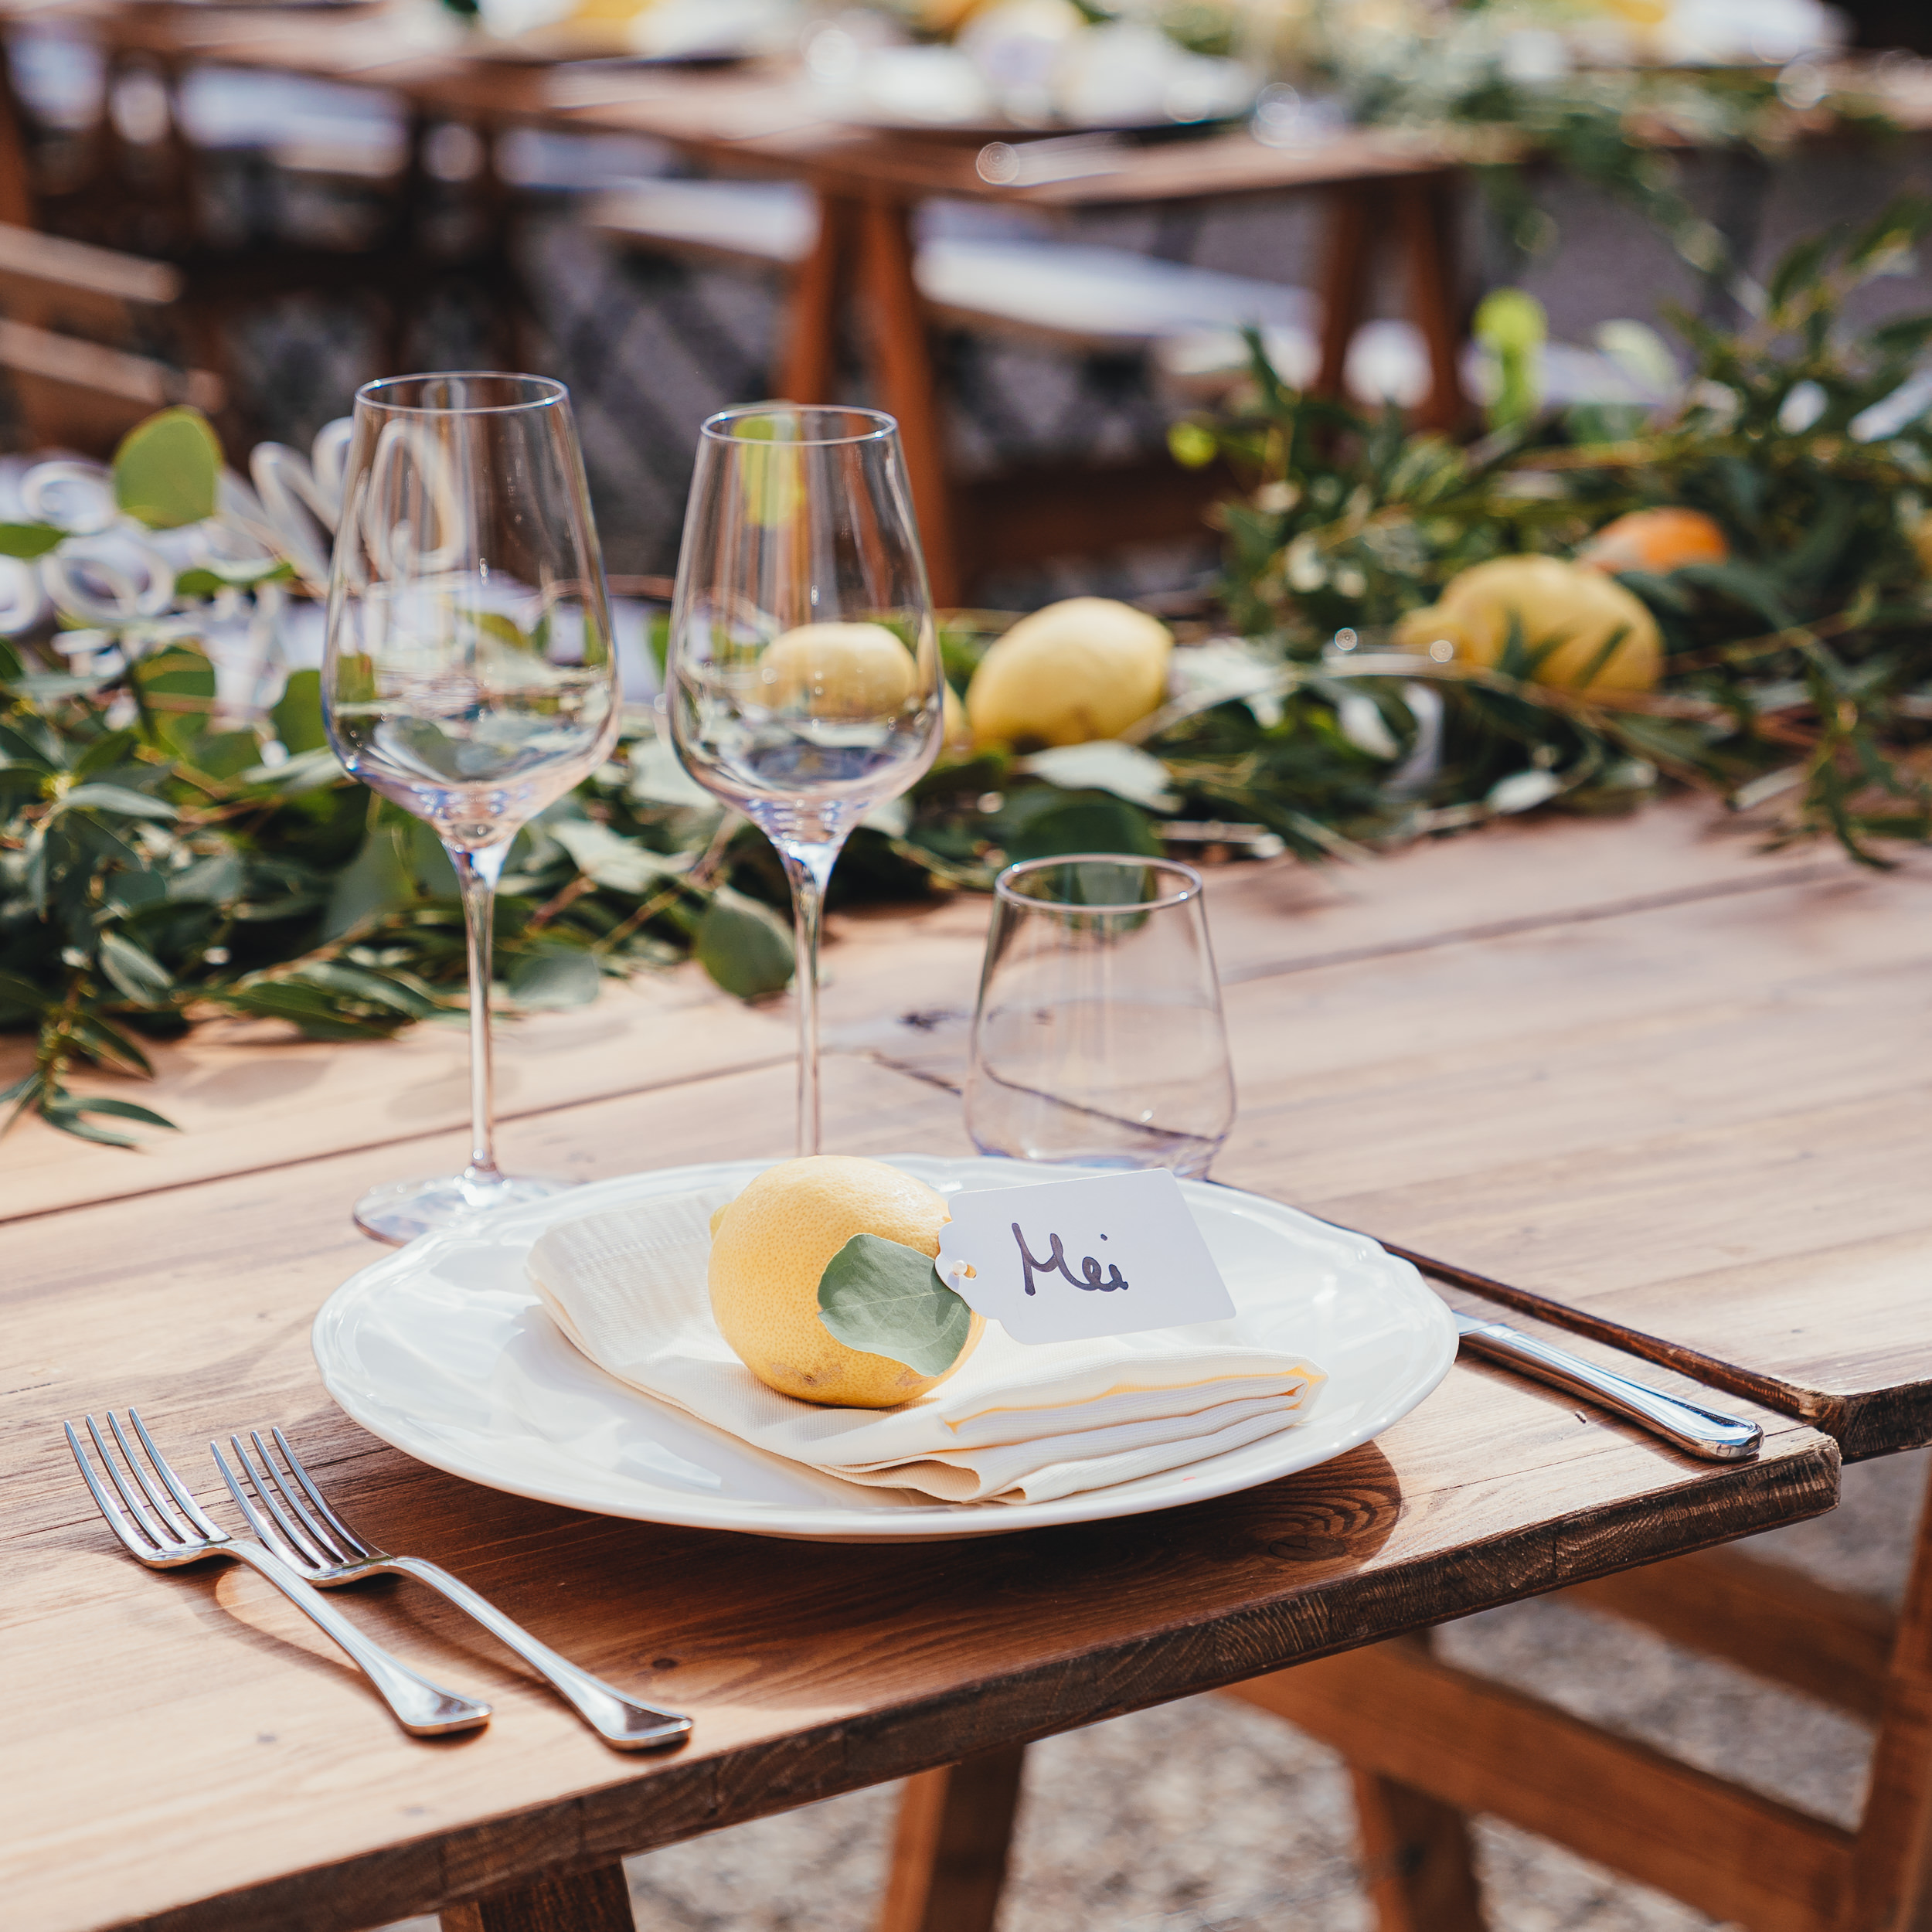 Tuscan Villa Wedding - The table decorations